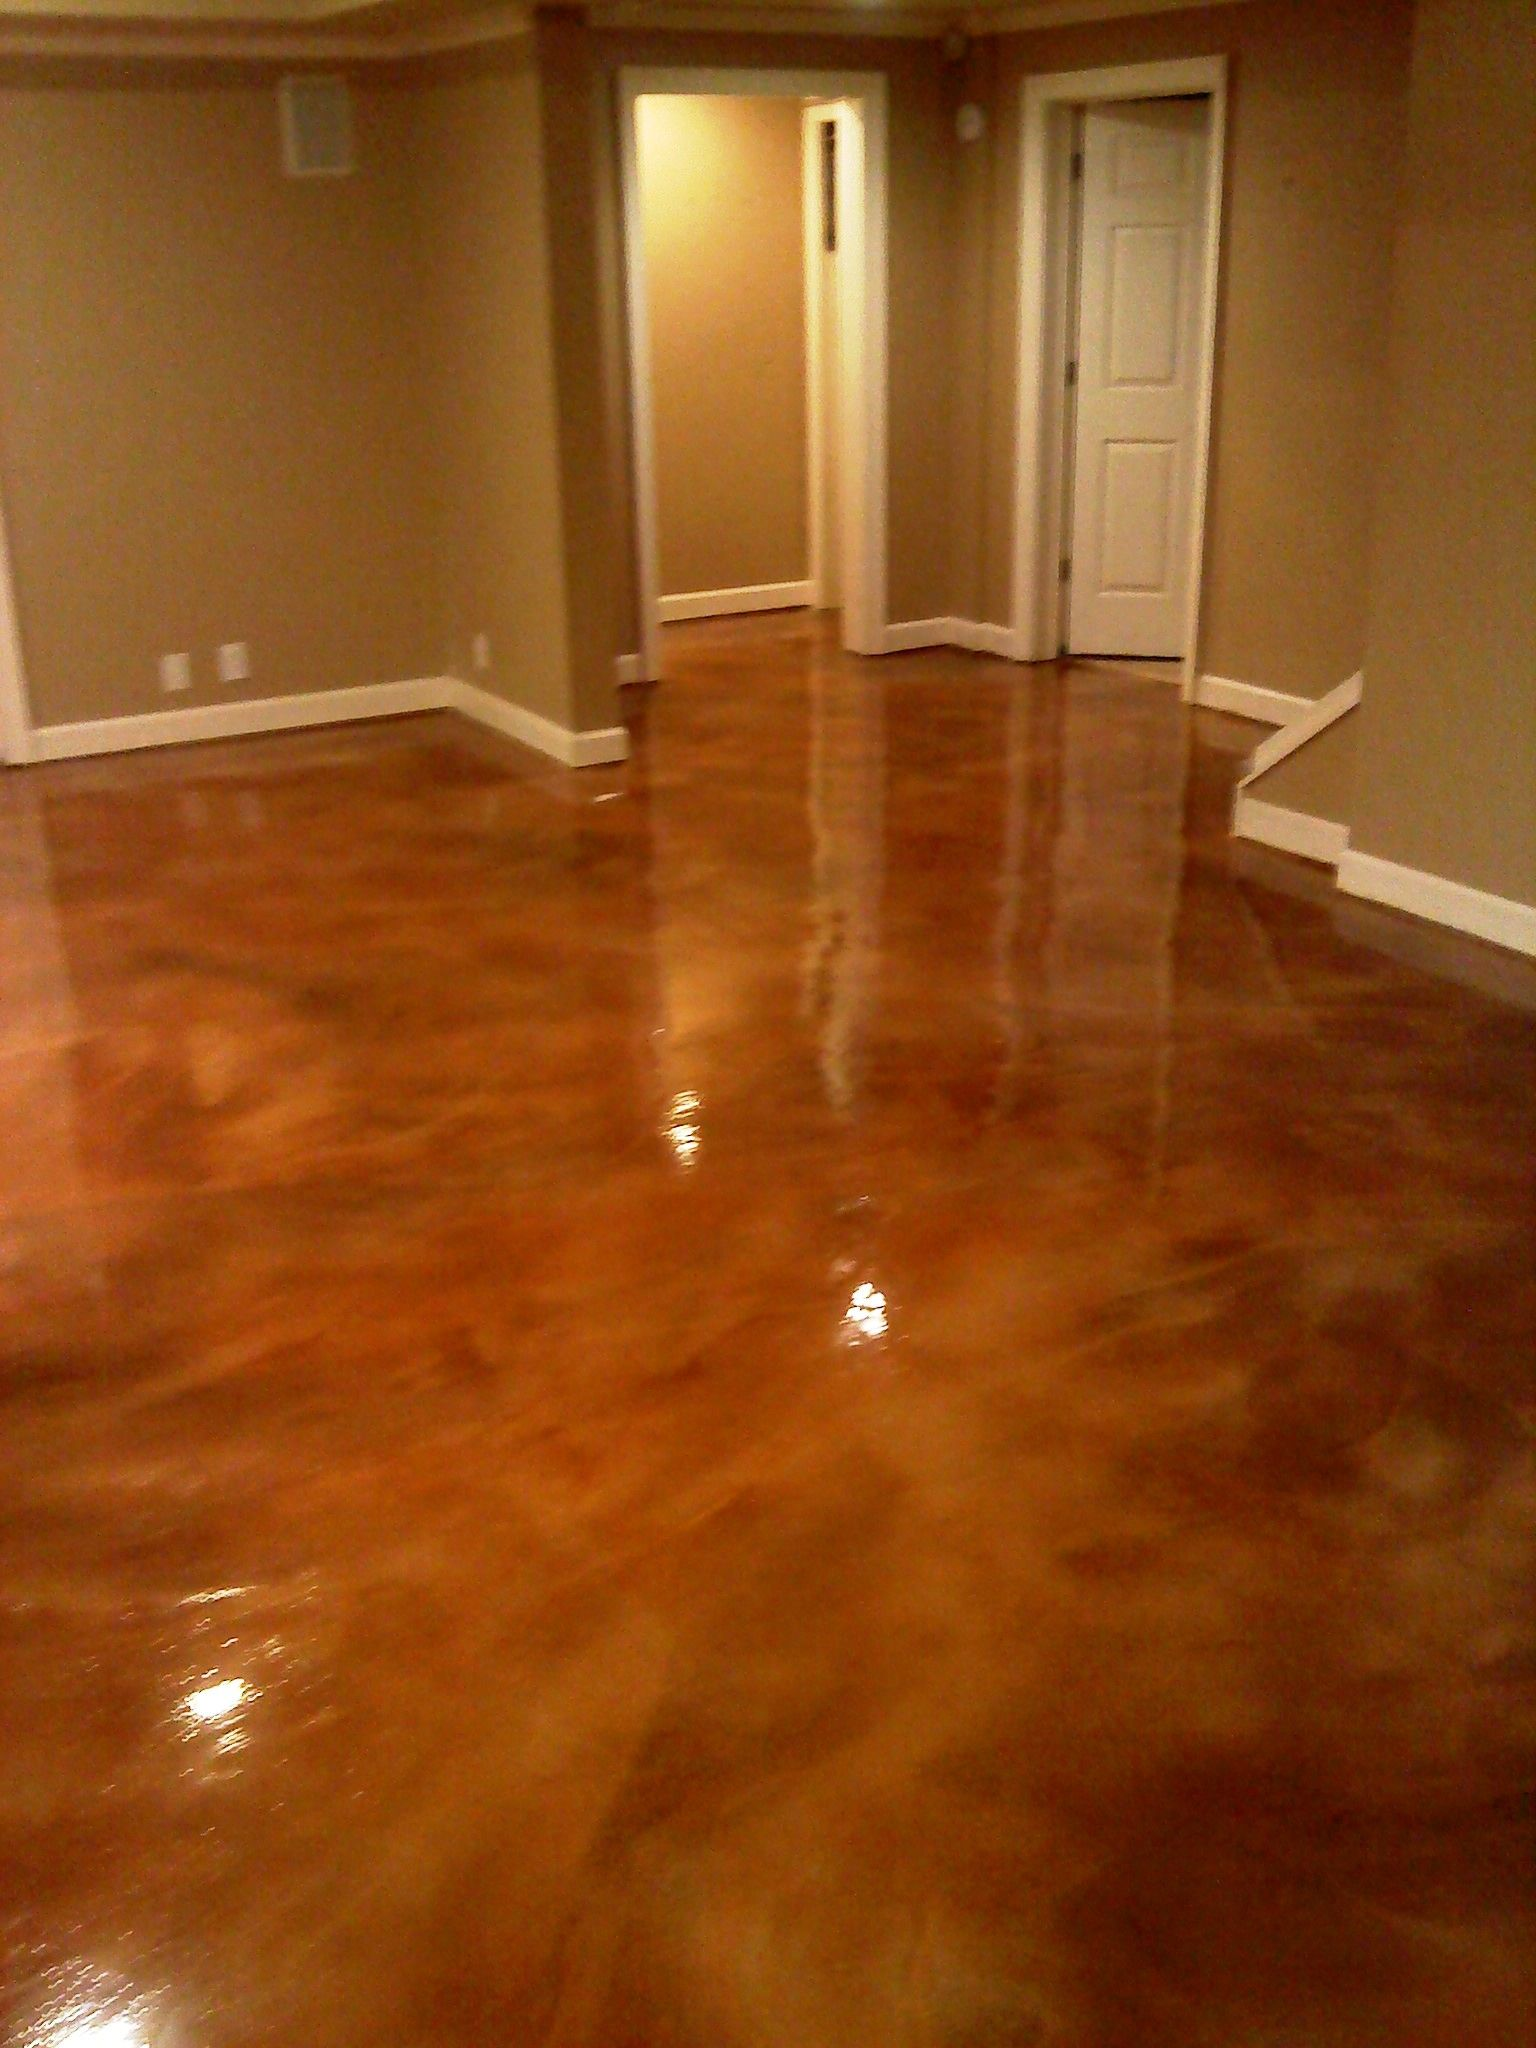 Viva Garage Floor Mats Basement Acid Concrete Stain I M Really Liking This Idea For